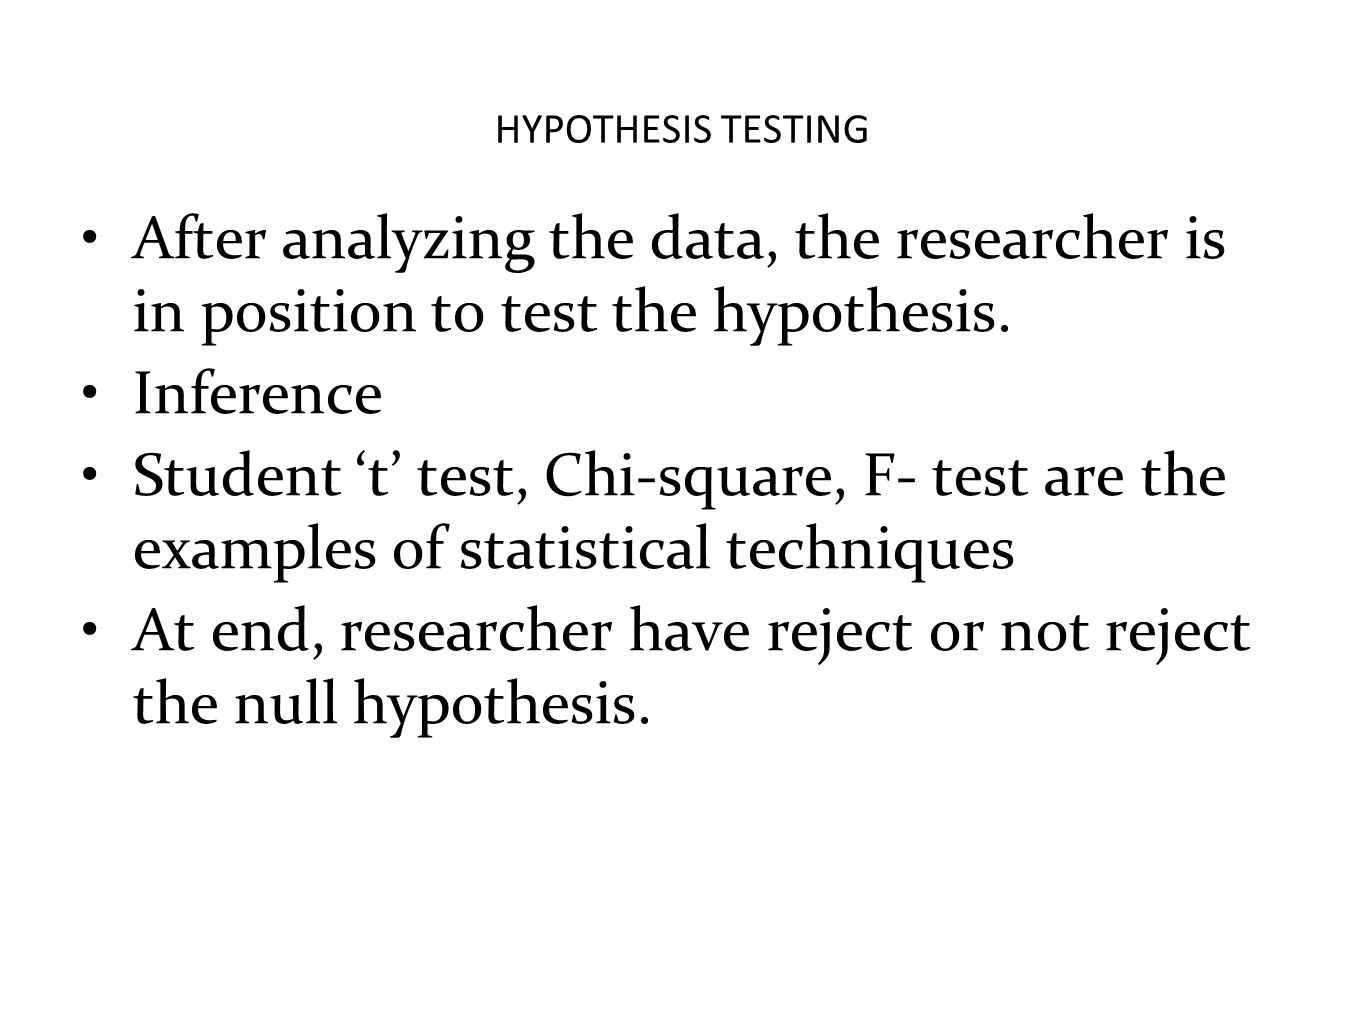 At end, researcher have reject or not reject the null hypothesis.